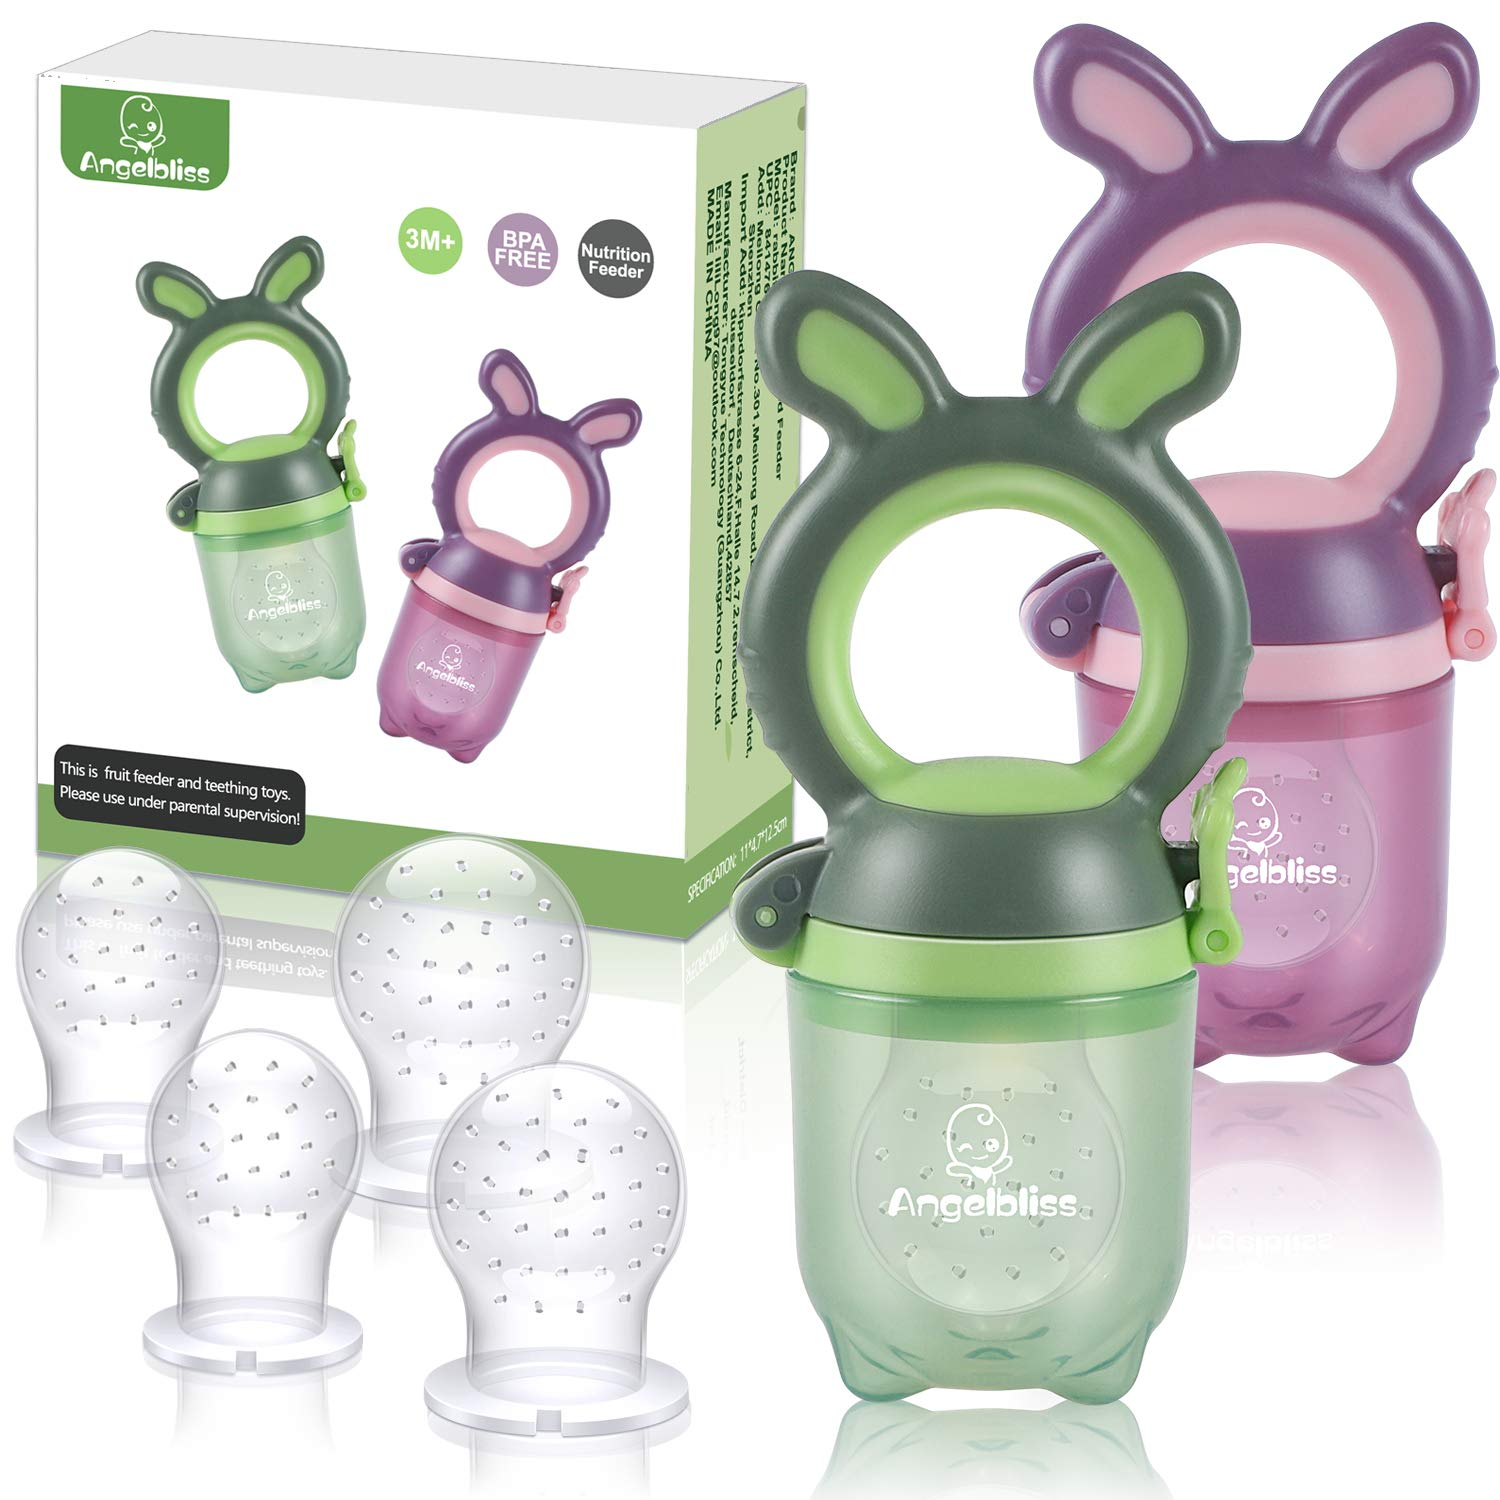 ANGELBLISS Baby Fruit Feeder Pacifier - Fresh Food Feeder, Infant Fruit Teething Toy for 3-24 Months Toddlers & Kids (Green/Purple 2 Pack) BPA Free, CPC Certified